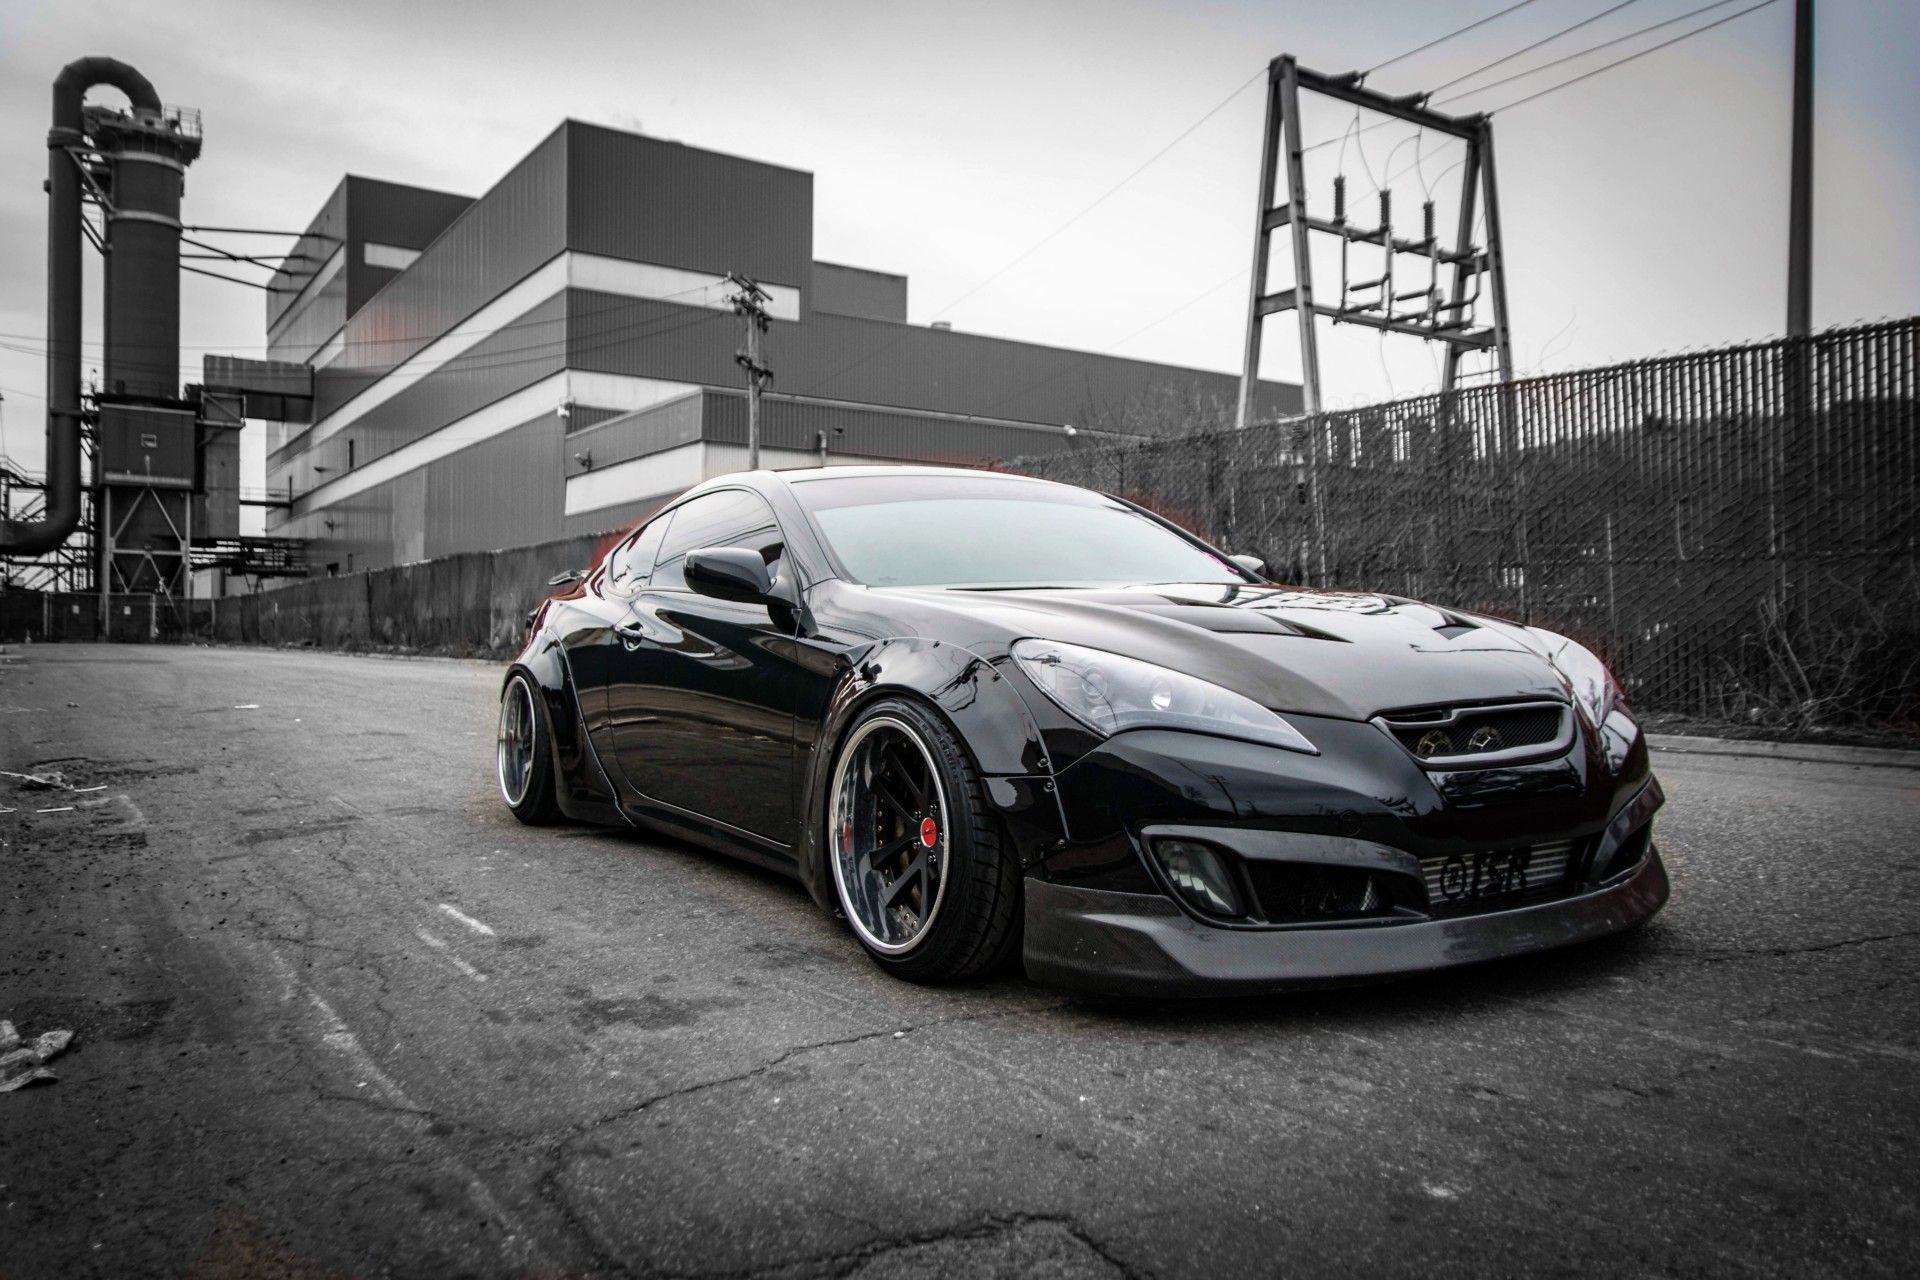 Widebody Kit V 2 For Hyundai Genesis Coupe For Hyundai Genesis Coupe Monsterservice Hyundai Genesis Coupe Hyundai Genesis Hyundai